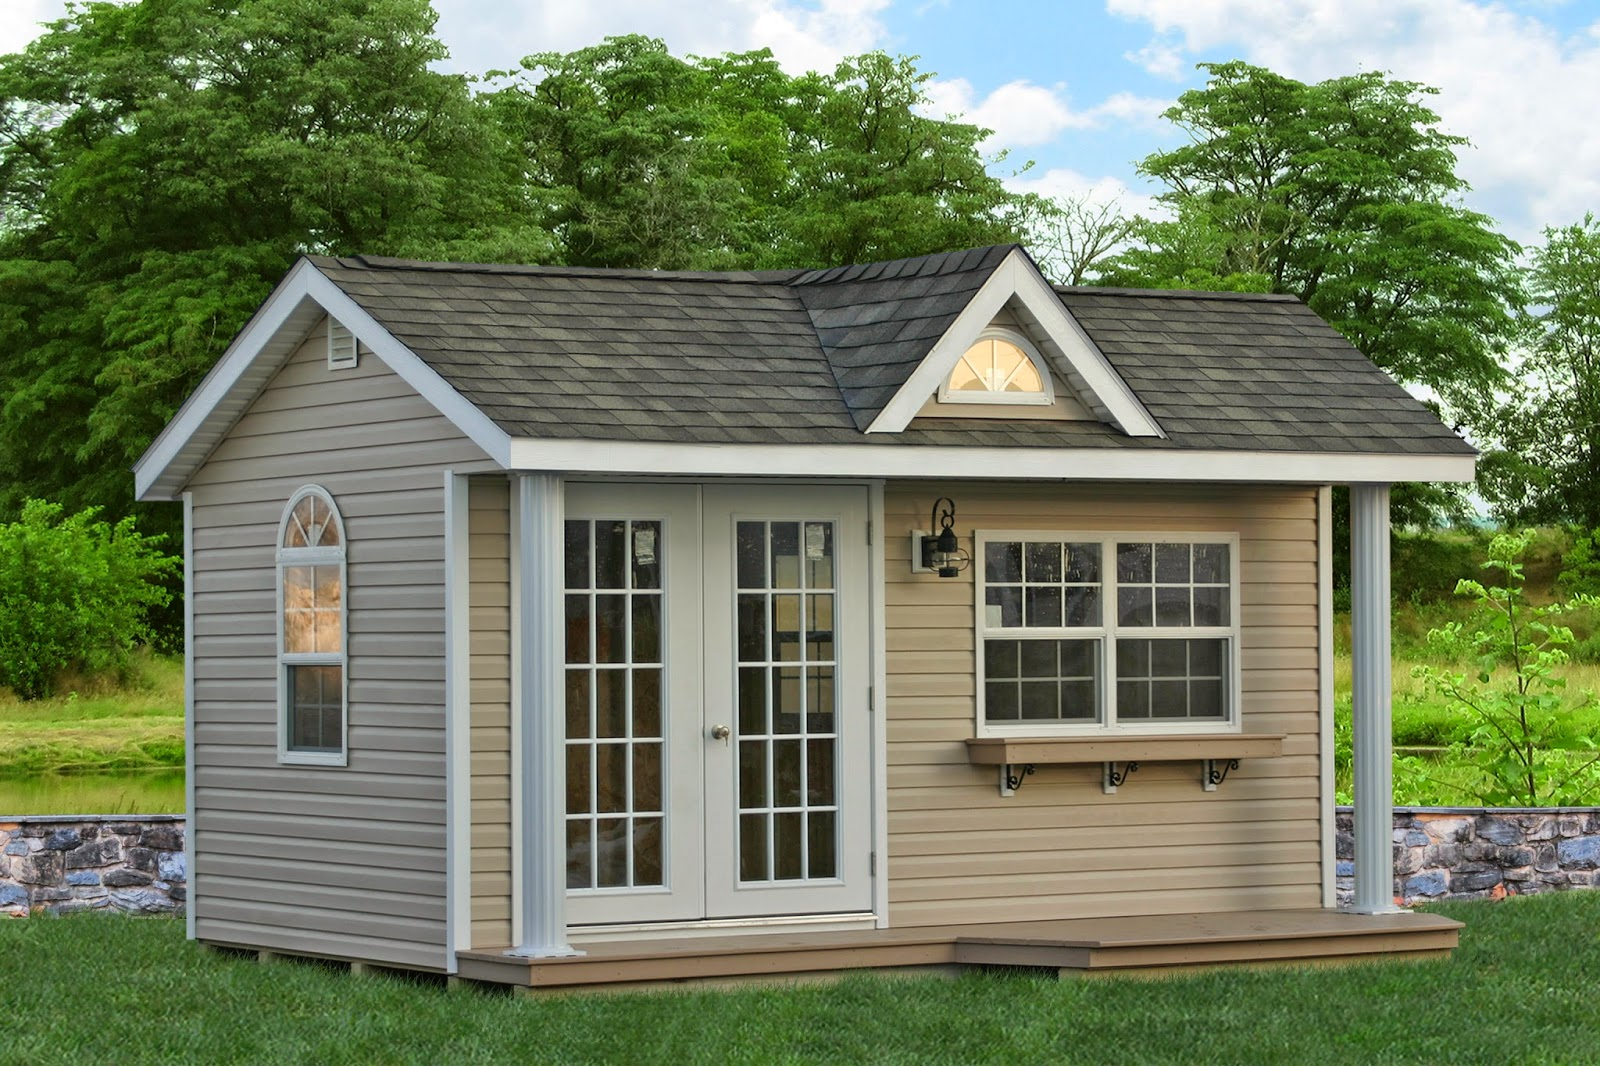 New home office sheds for sale for Small sheds for sale